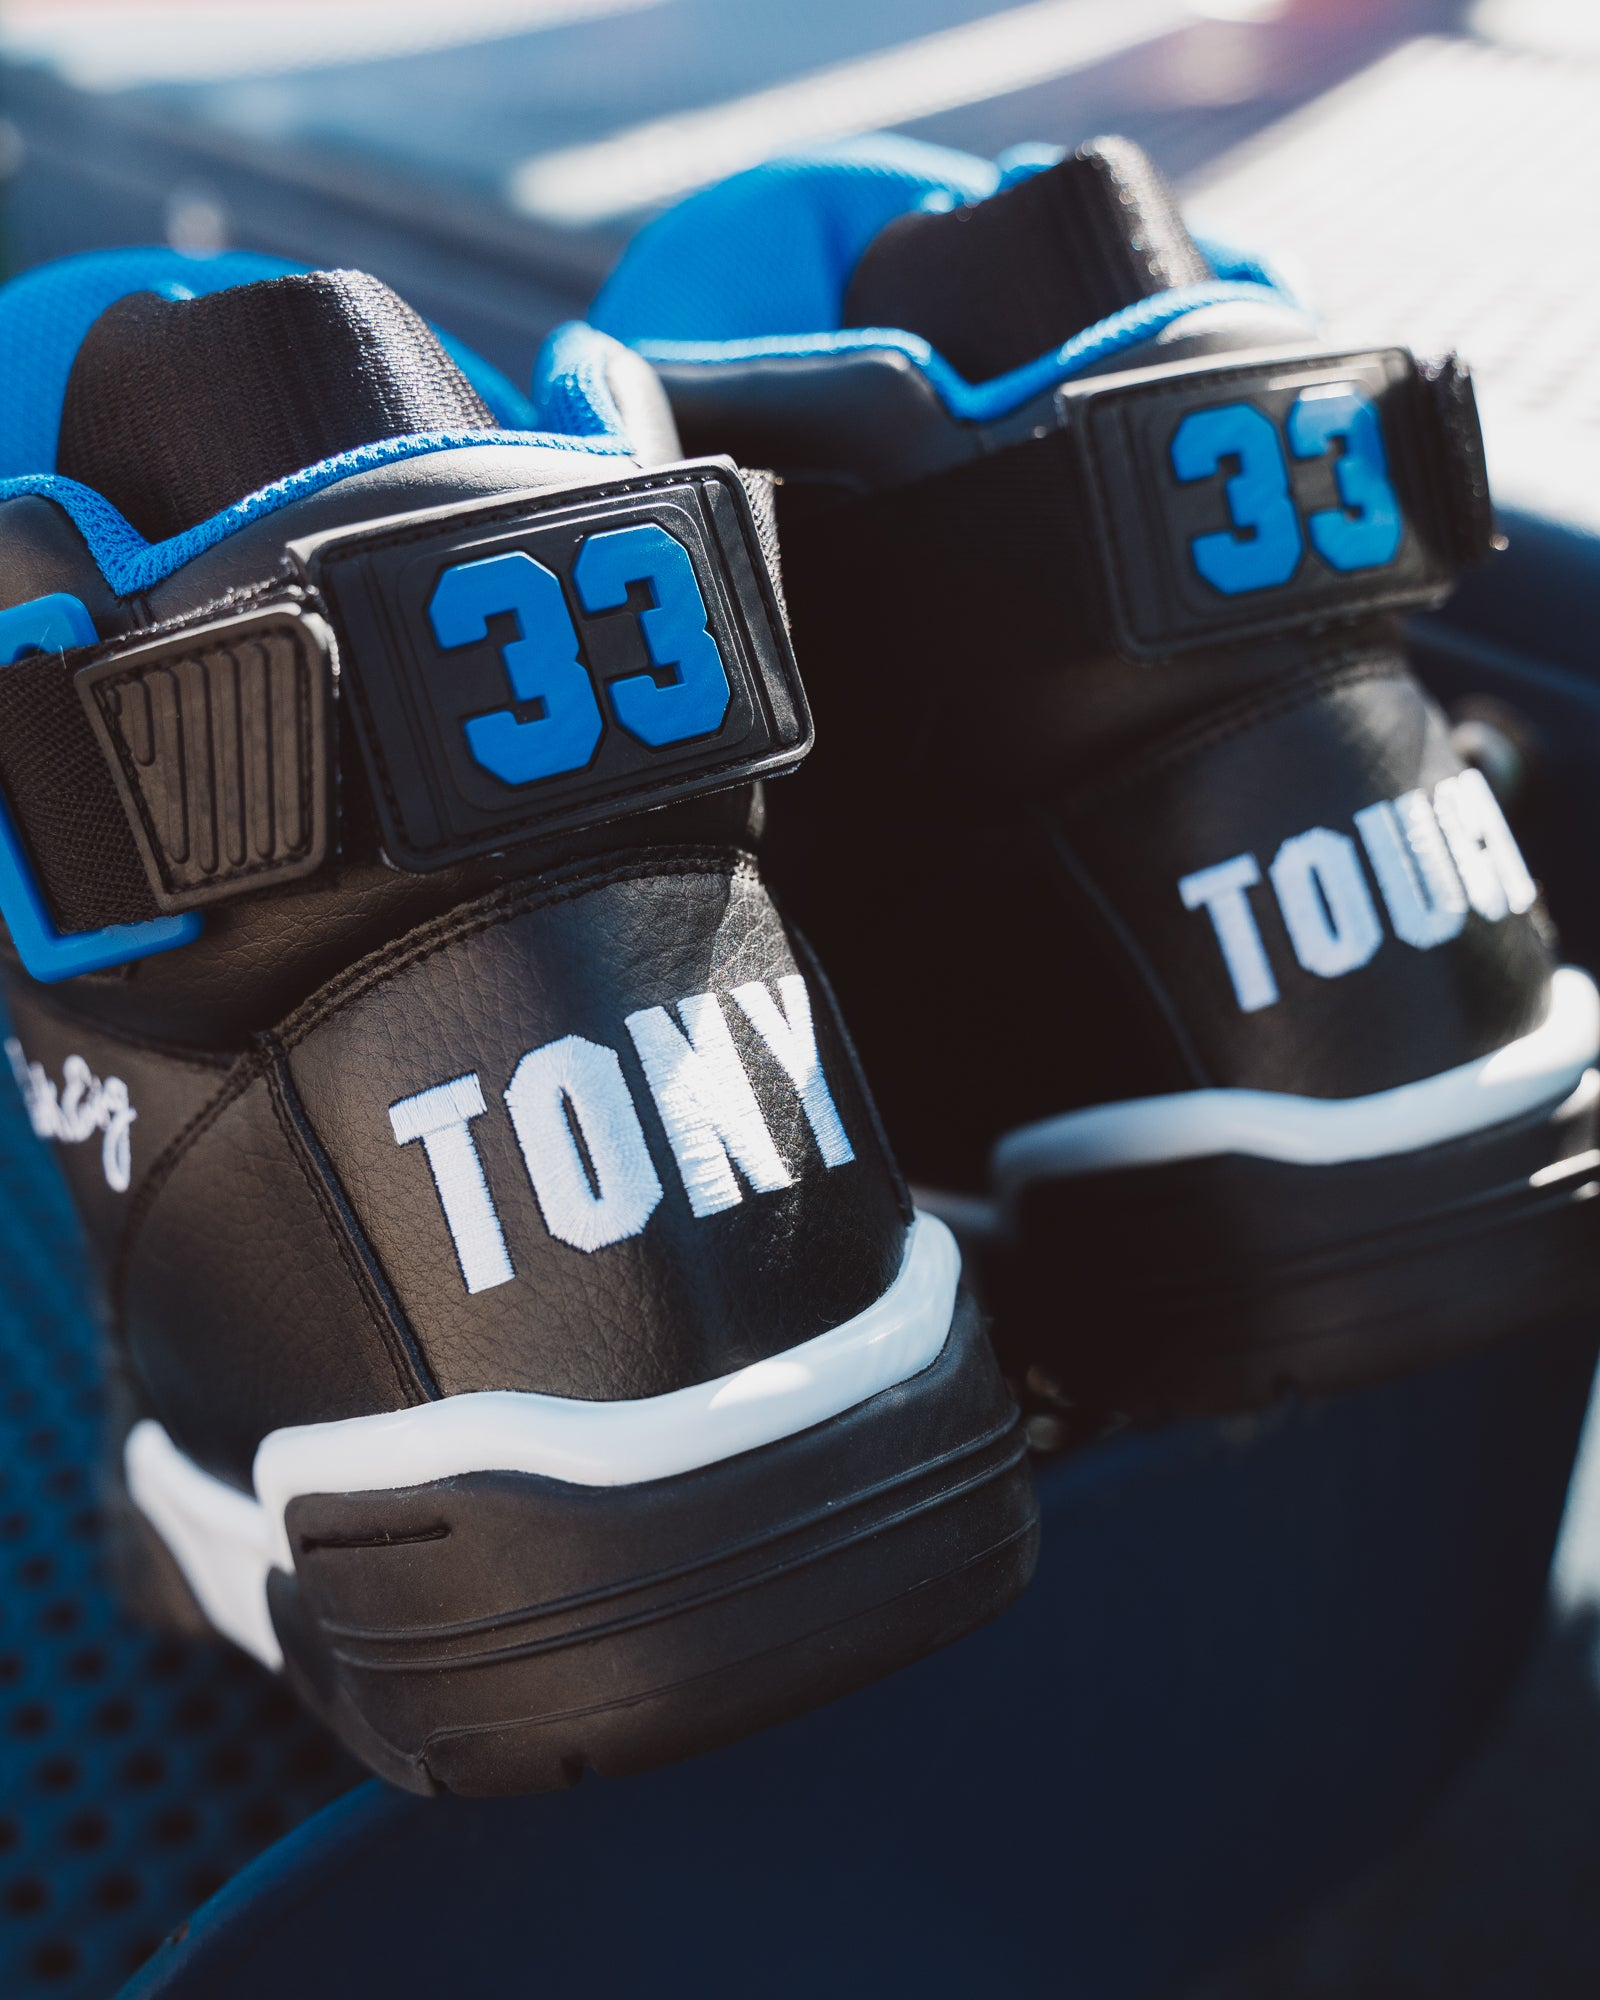 33 HI Black/White/Royal x TONY TOUCH